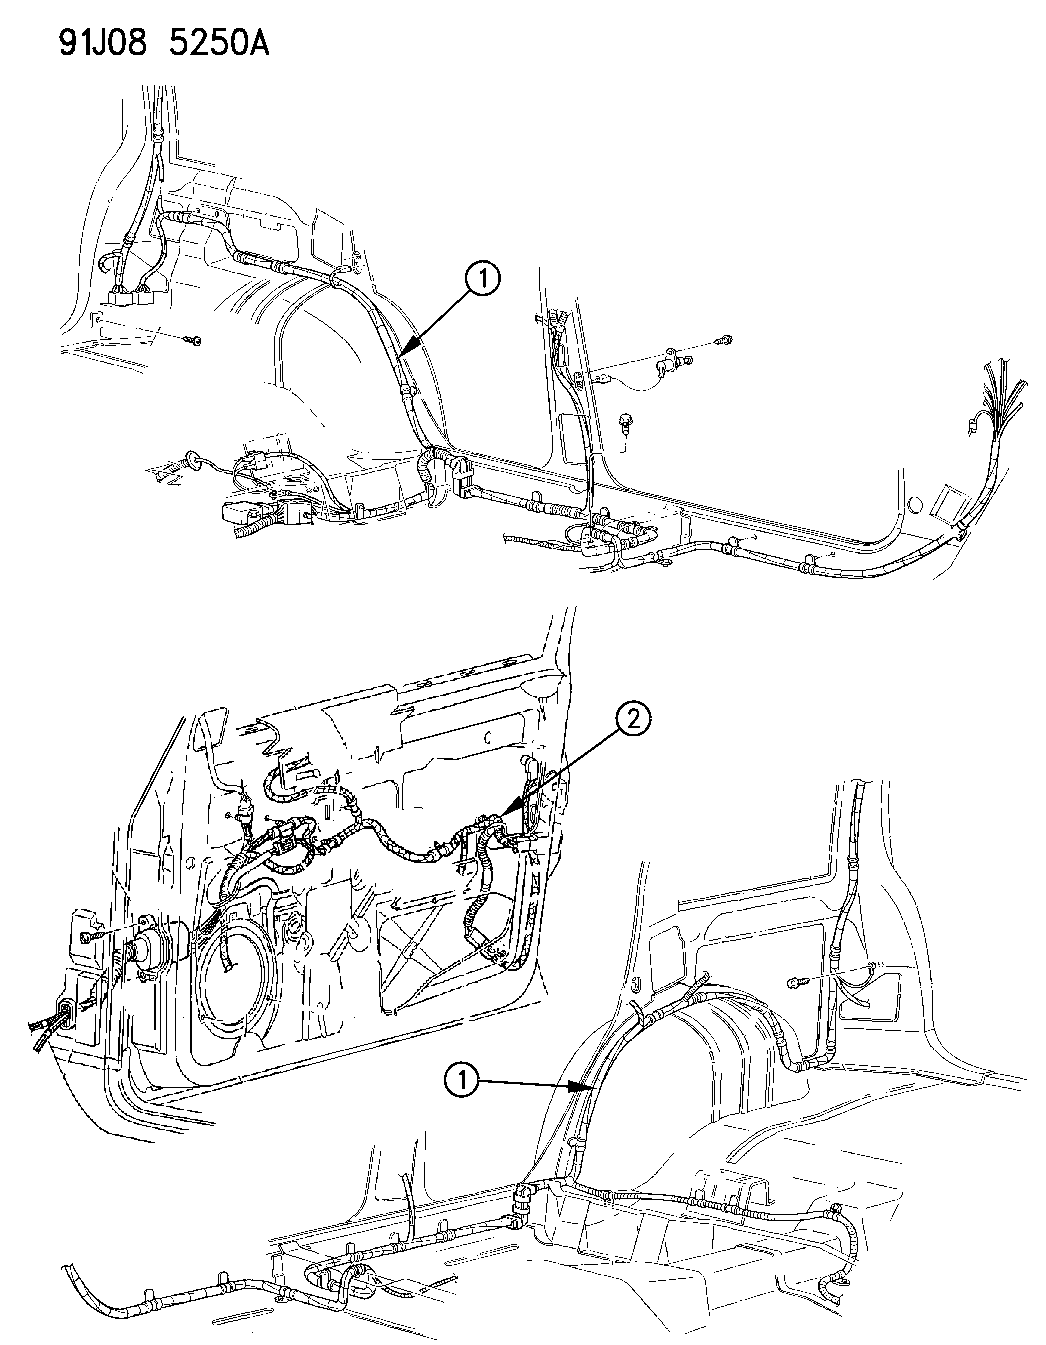 Wiring Diagram Jeep Grand Cherokee Zj